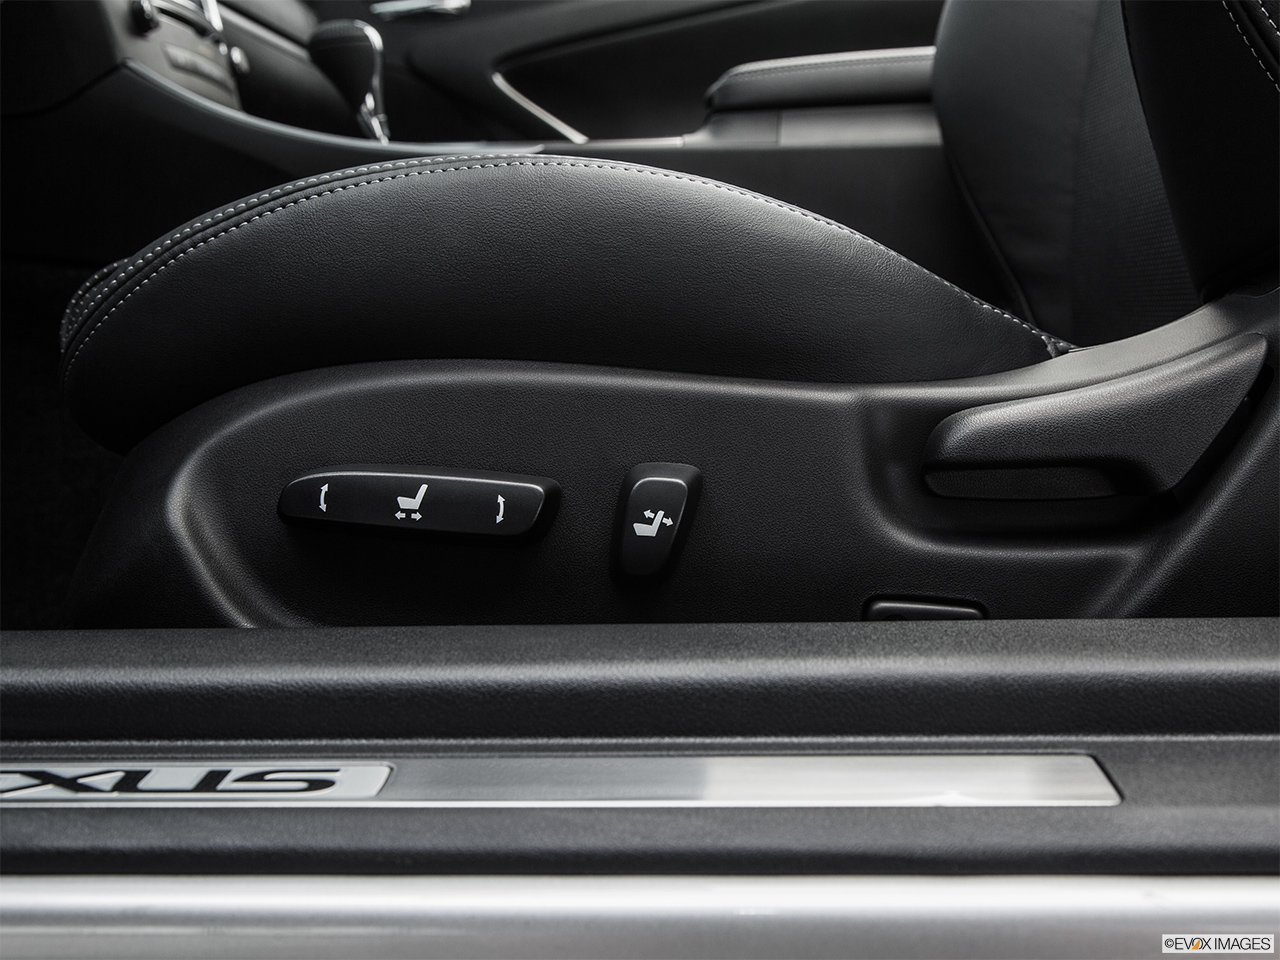 2015 Lexus IS C IS250 RWD Seat Adjustment Controllers.